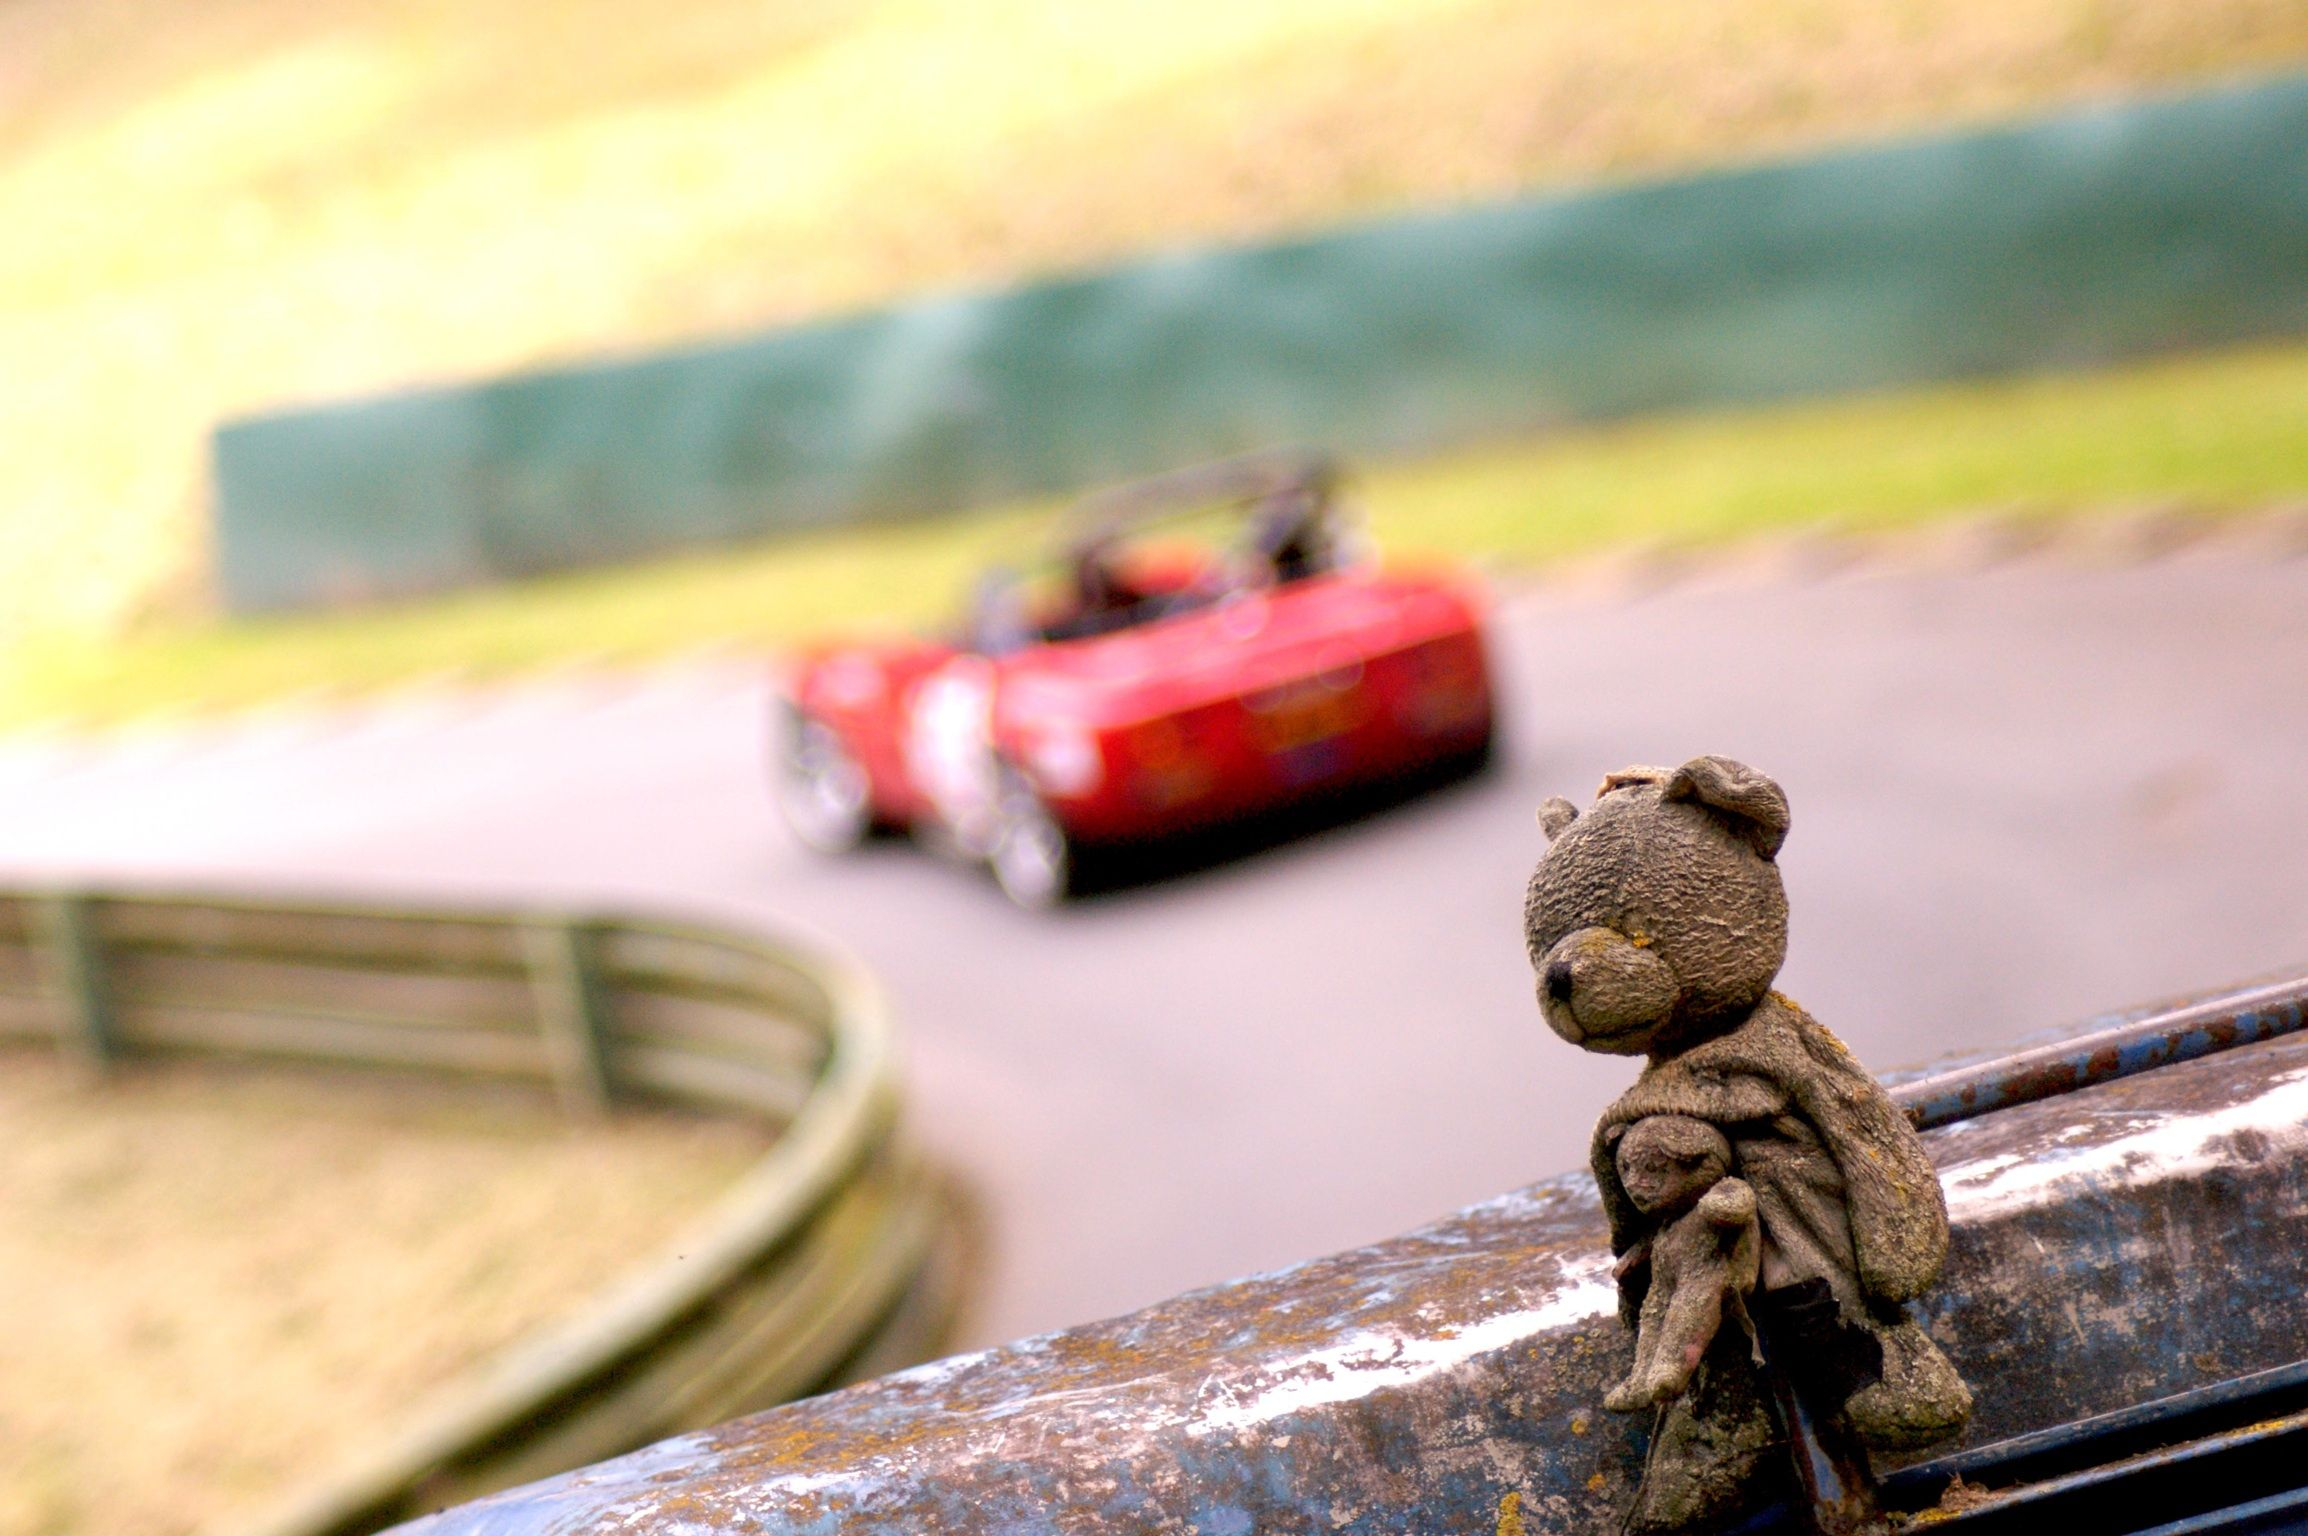 Teddy watching the races